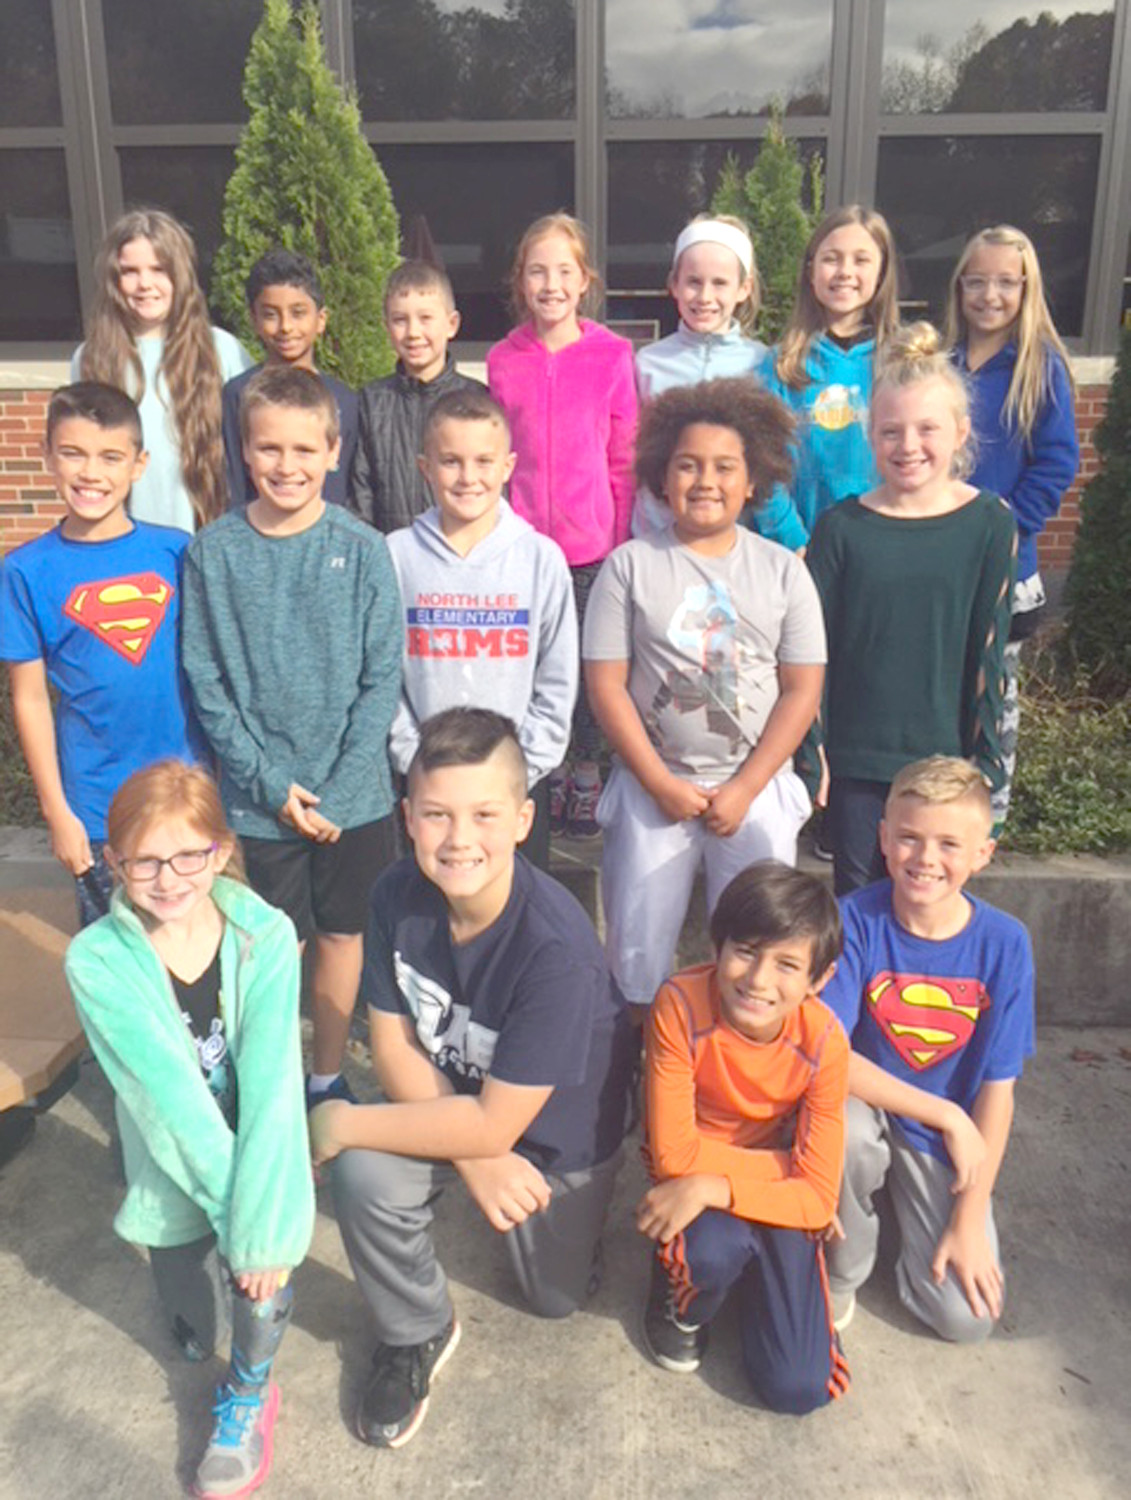 2017-18 NORTH LEE Elementary School fourth-grade mentors posed for a recent photo. These students meet with their mentees weekly for tutoring, Accelerated Reader testing, fun on the playground, buddy breakfasts, and anything else the classroom teachers ask them to do. It's considered a great honor to be chosen as a mentor. In the front row, from left, are Chloe Flowers, Caden Williams, Everest Shrestha and Alex King.  In the second row are Mitch Brown, Hudson Brooks, Cael Coates, Kaleb Jackson and Baylee Koons. At back are  Elle Jenzen, Blake Sookal, Boston Heier, Sydney Creekmore, Caileigh Collins, Morgan Brandenburg and Kaelyn Yoder.